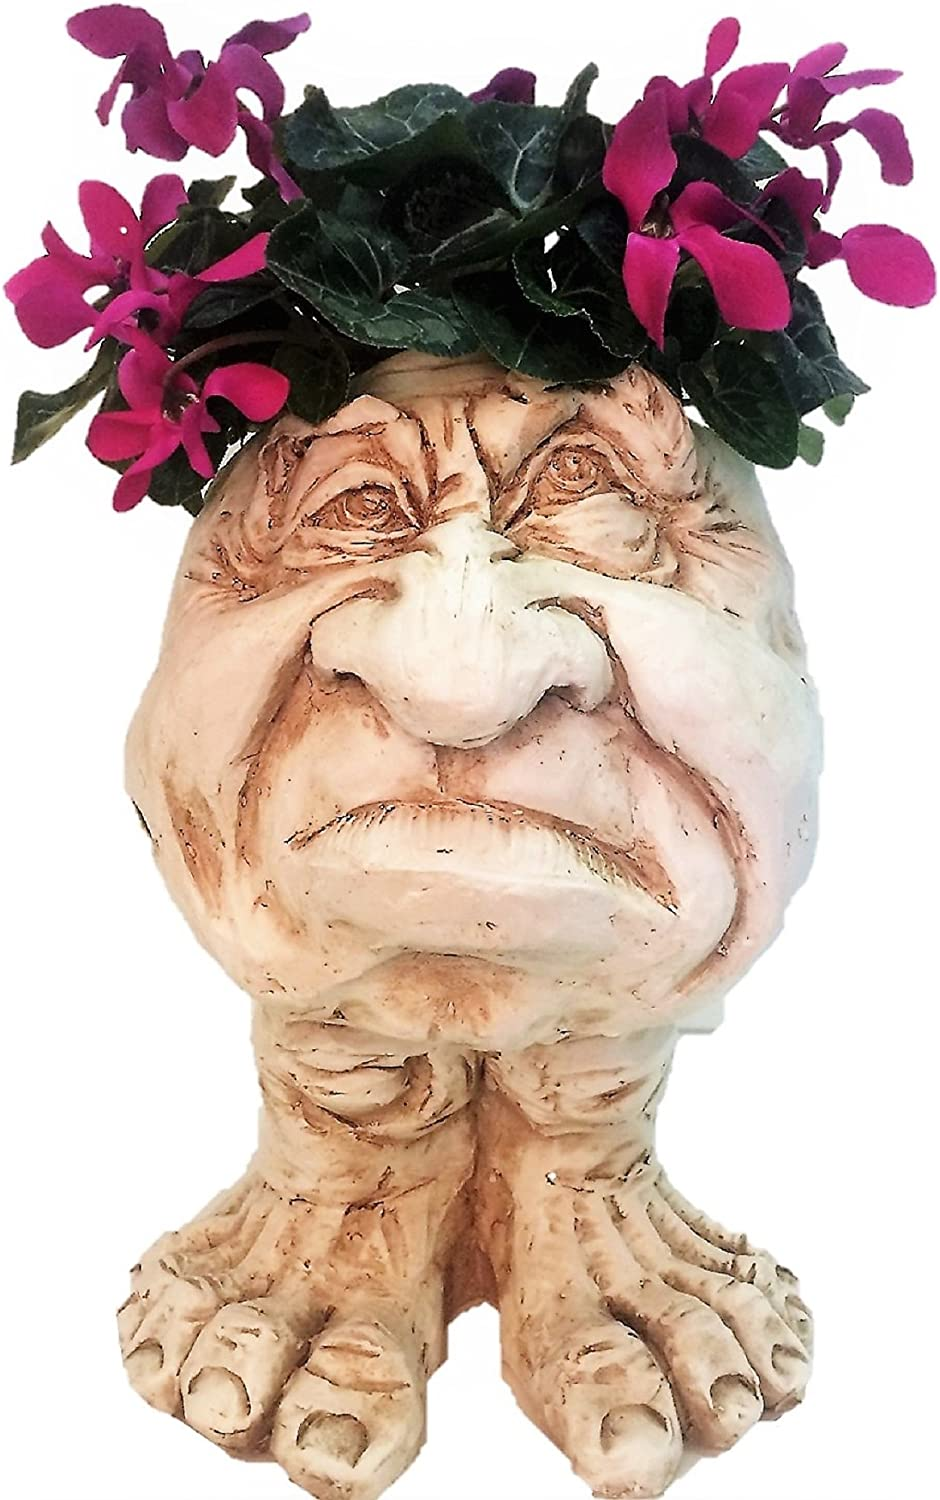 Homestyles 18 in. Antique White Super-cheap Grumpy Muggly Pl Statue Detroit Mall The Face